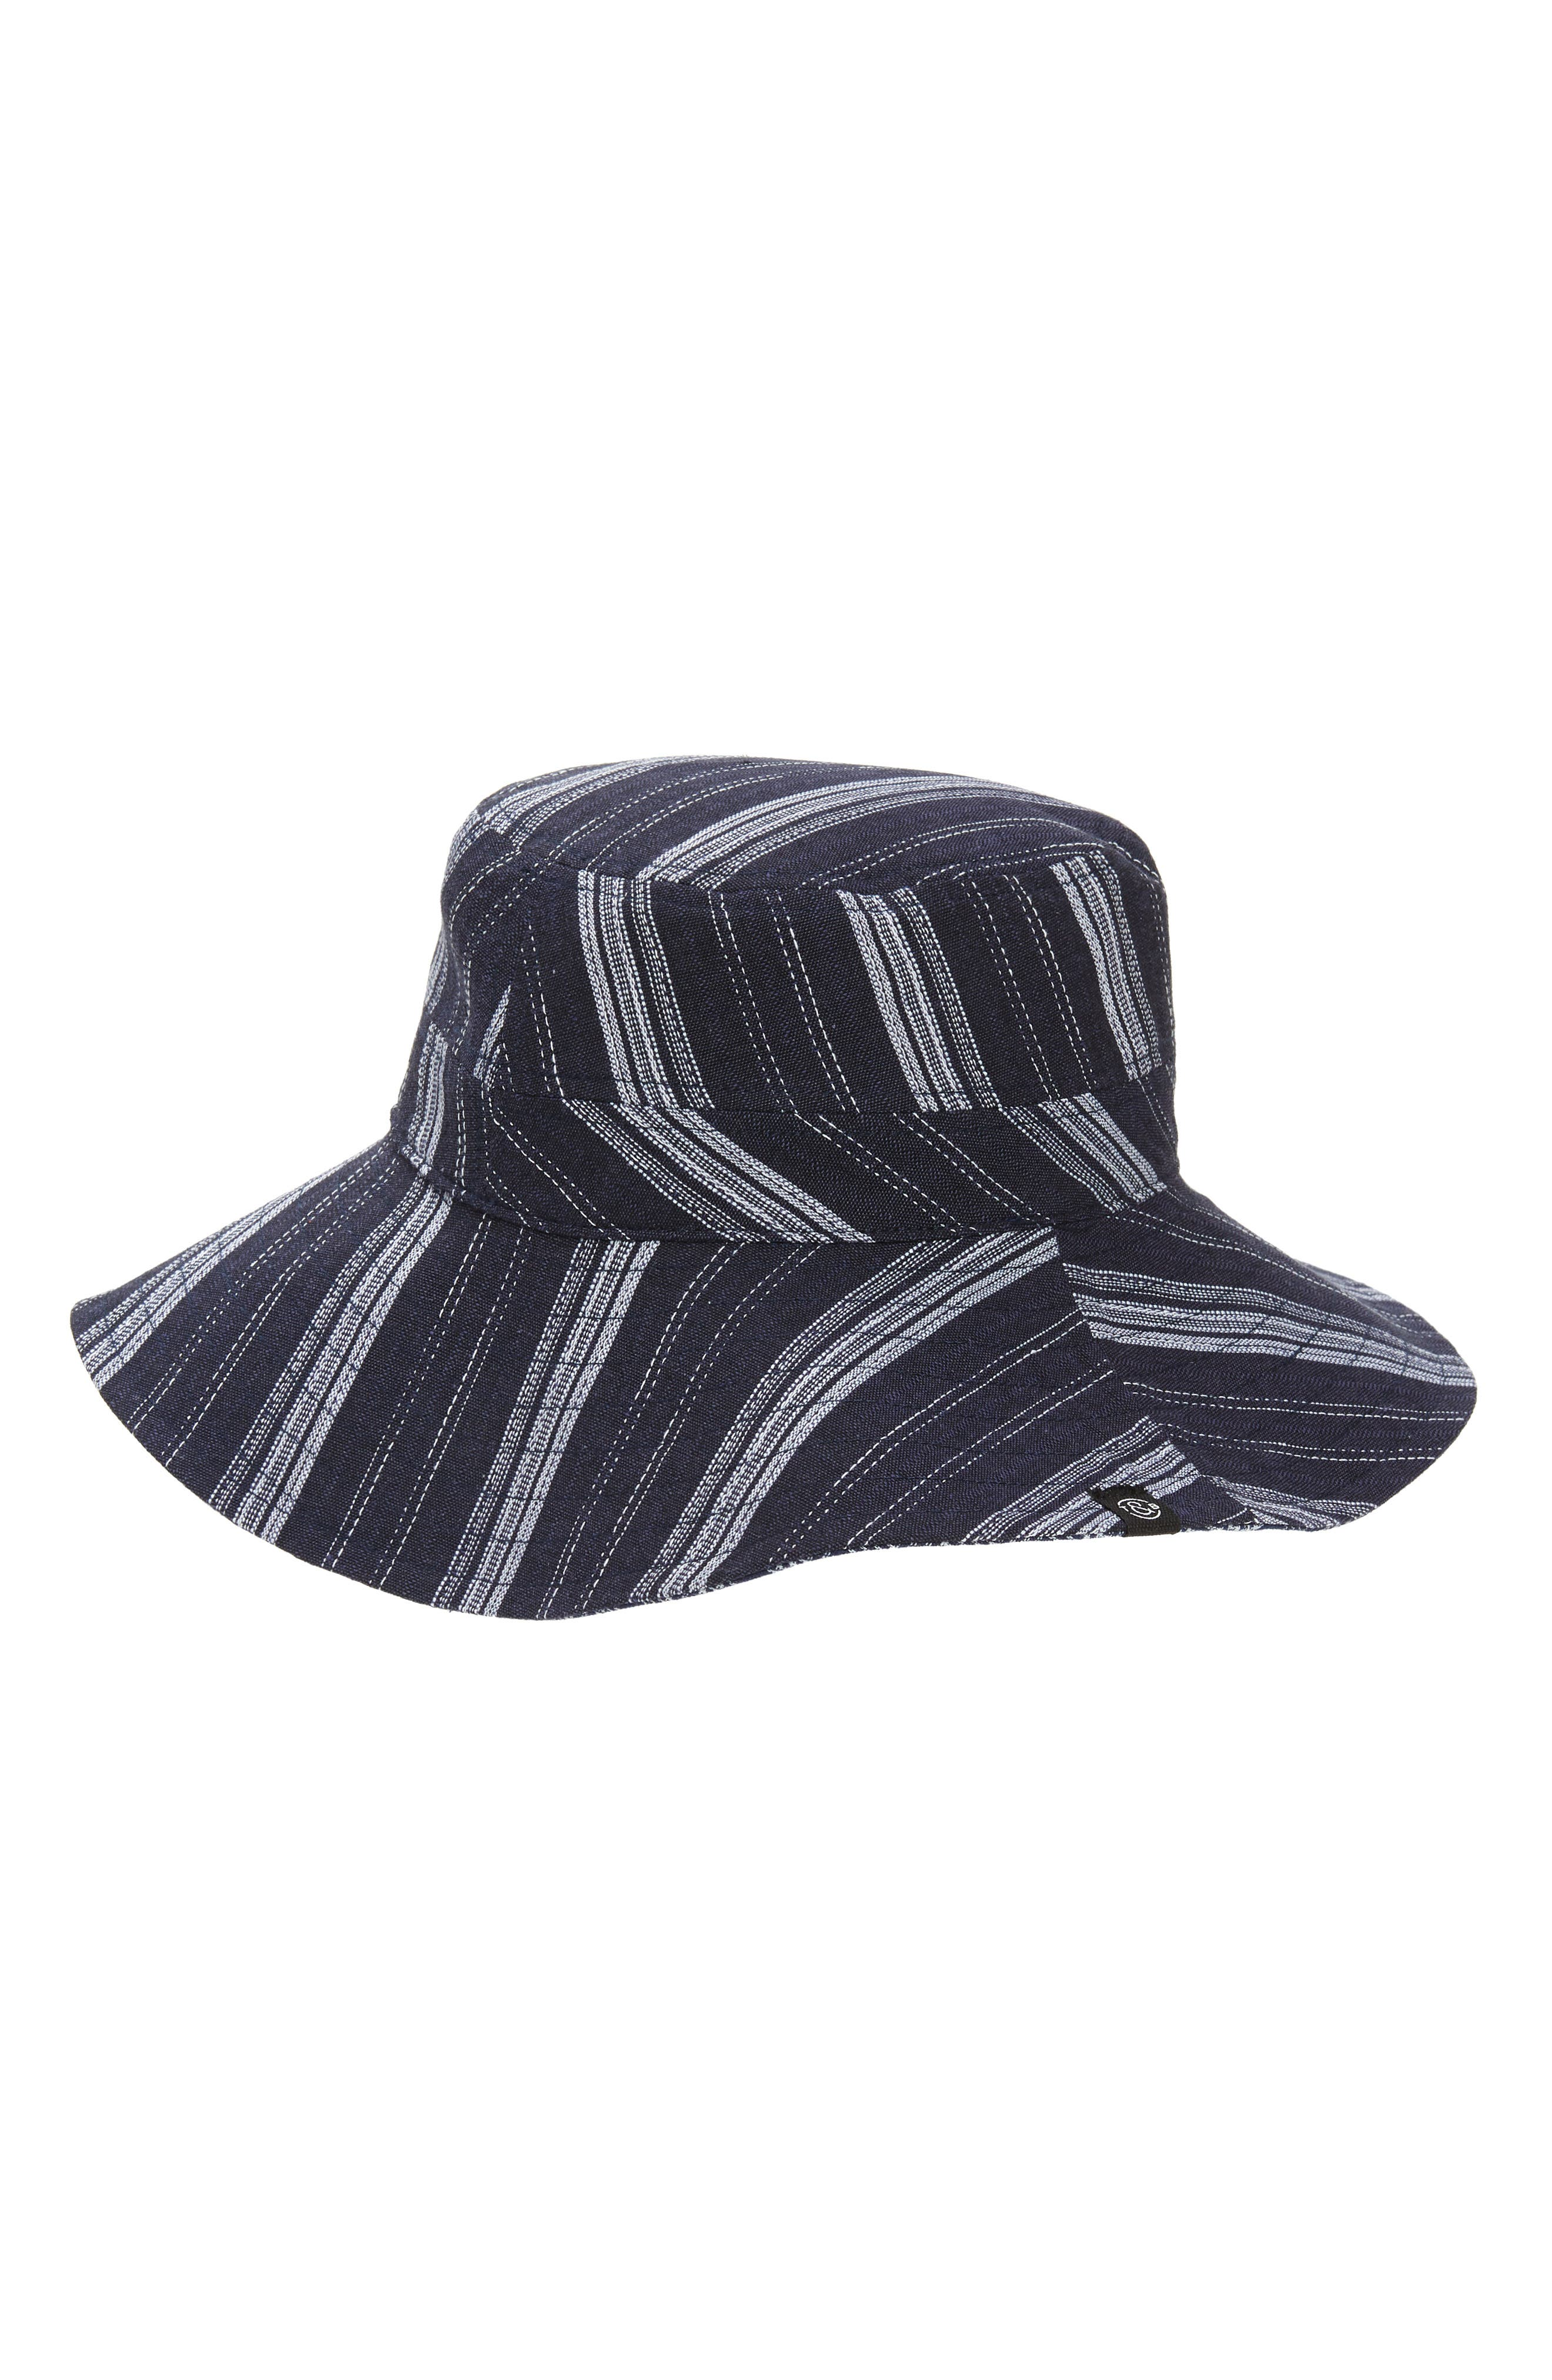 Upgrade your look with a reversible bucket hat that offers double the suave \\\'90s style. When you buy Treasure & Bond, Nordstrom will donate 2.5% of net sales to organizations that work to empower youth. Style Name: Treasure & Bond Reversible Bucket Hat. Style Number: 5987737. Available in stores.